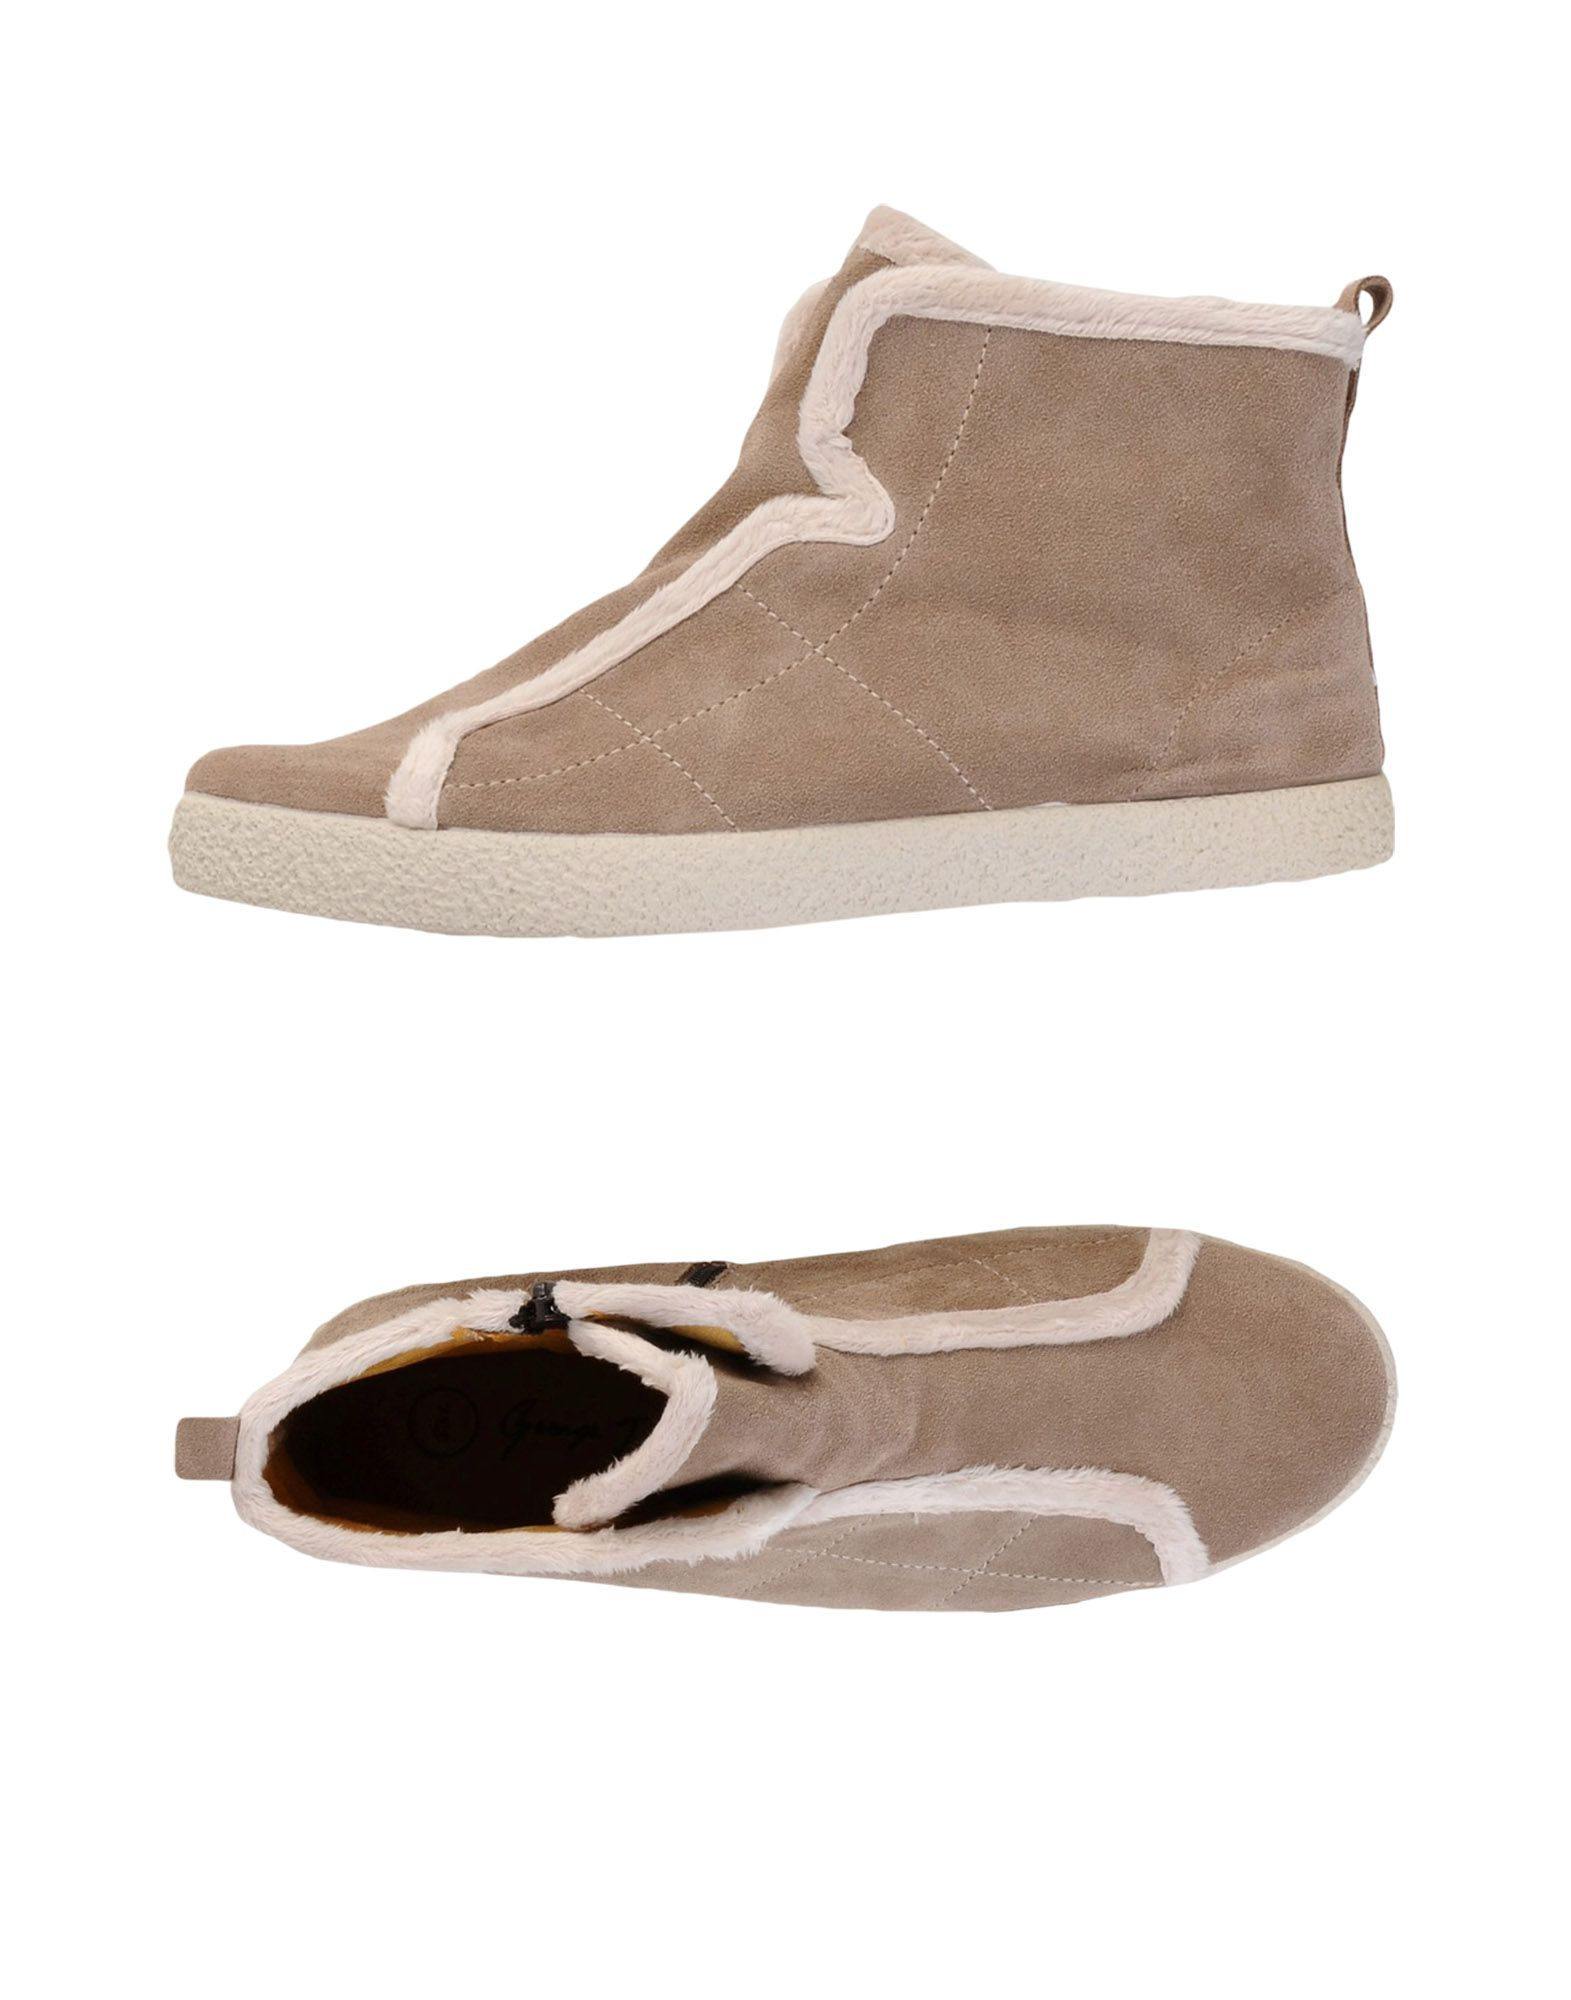 Sneakers George 11559874PW J. Love Donna - 11559874PW George 261786